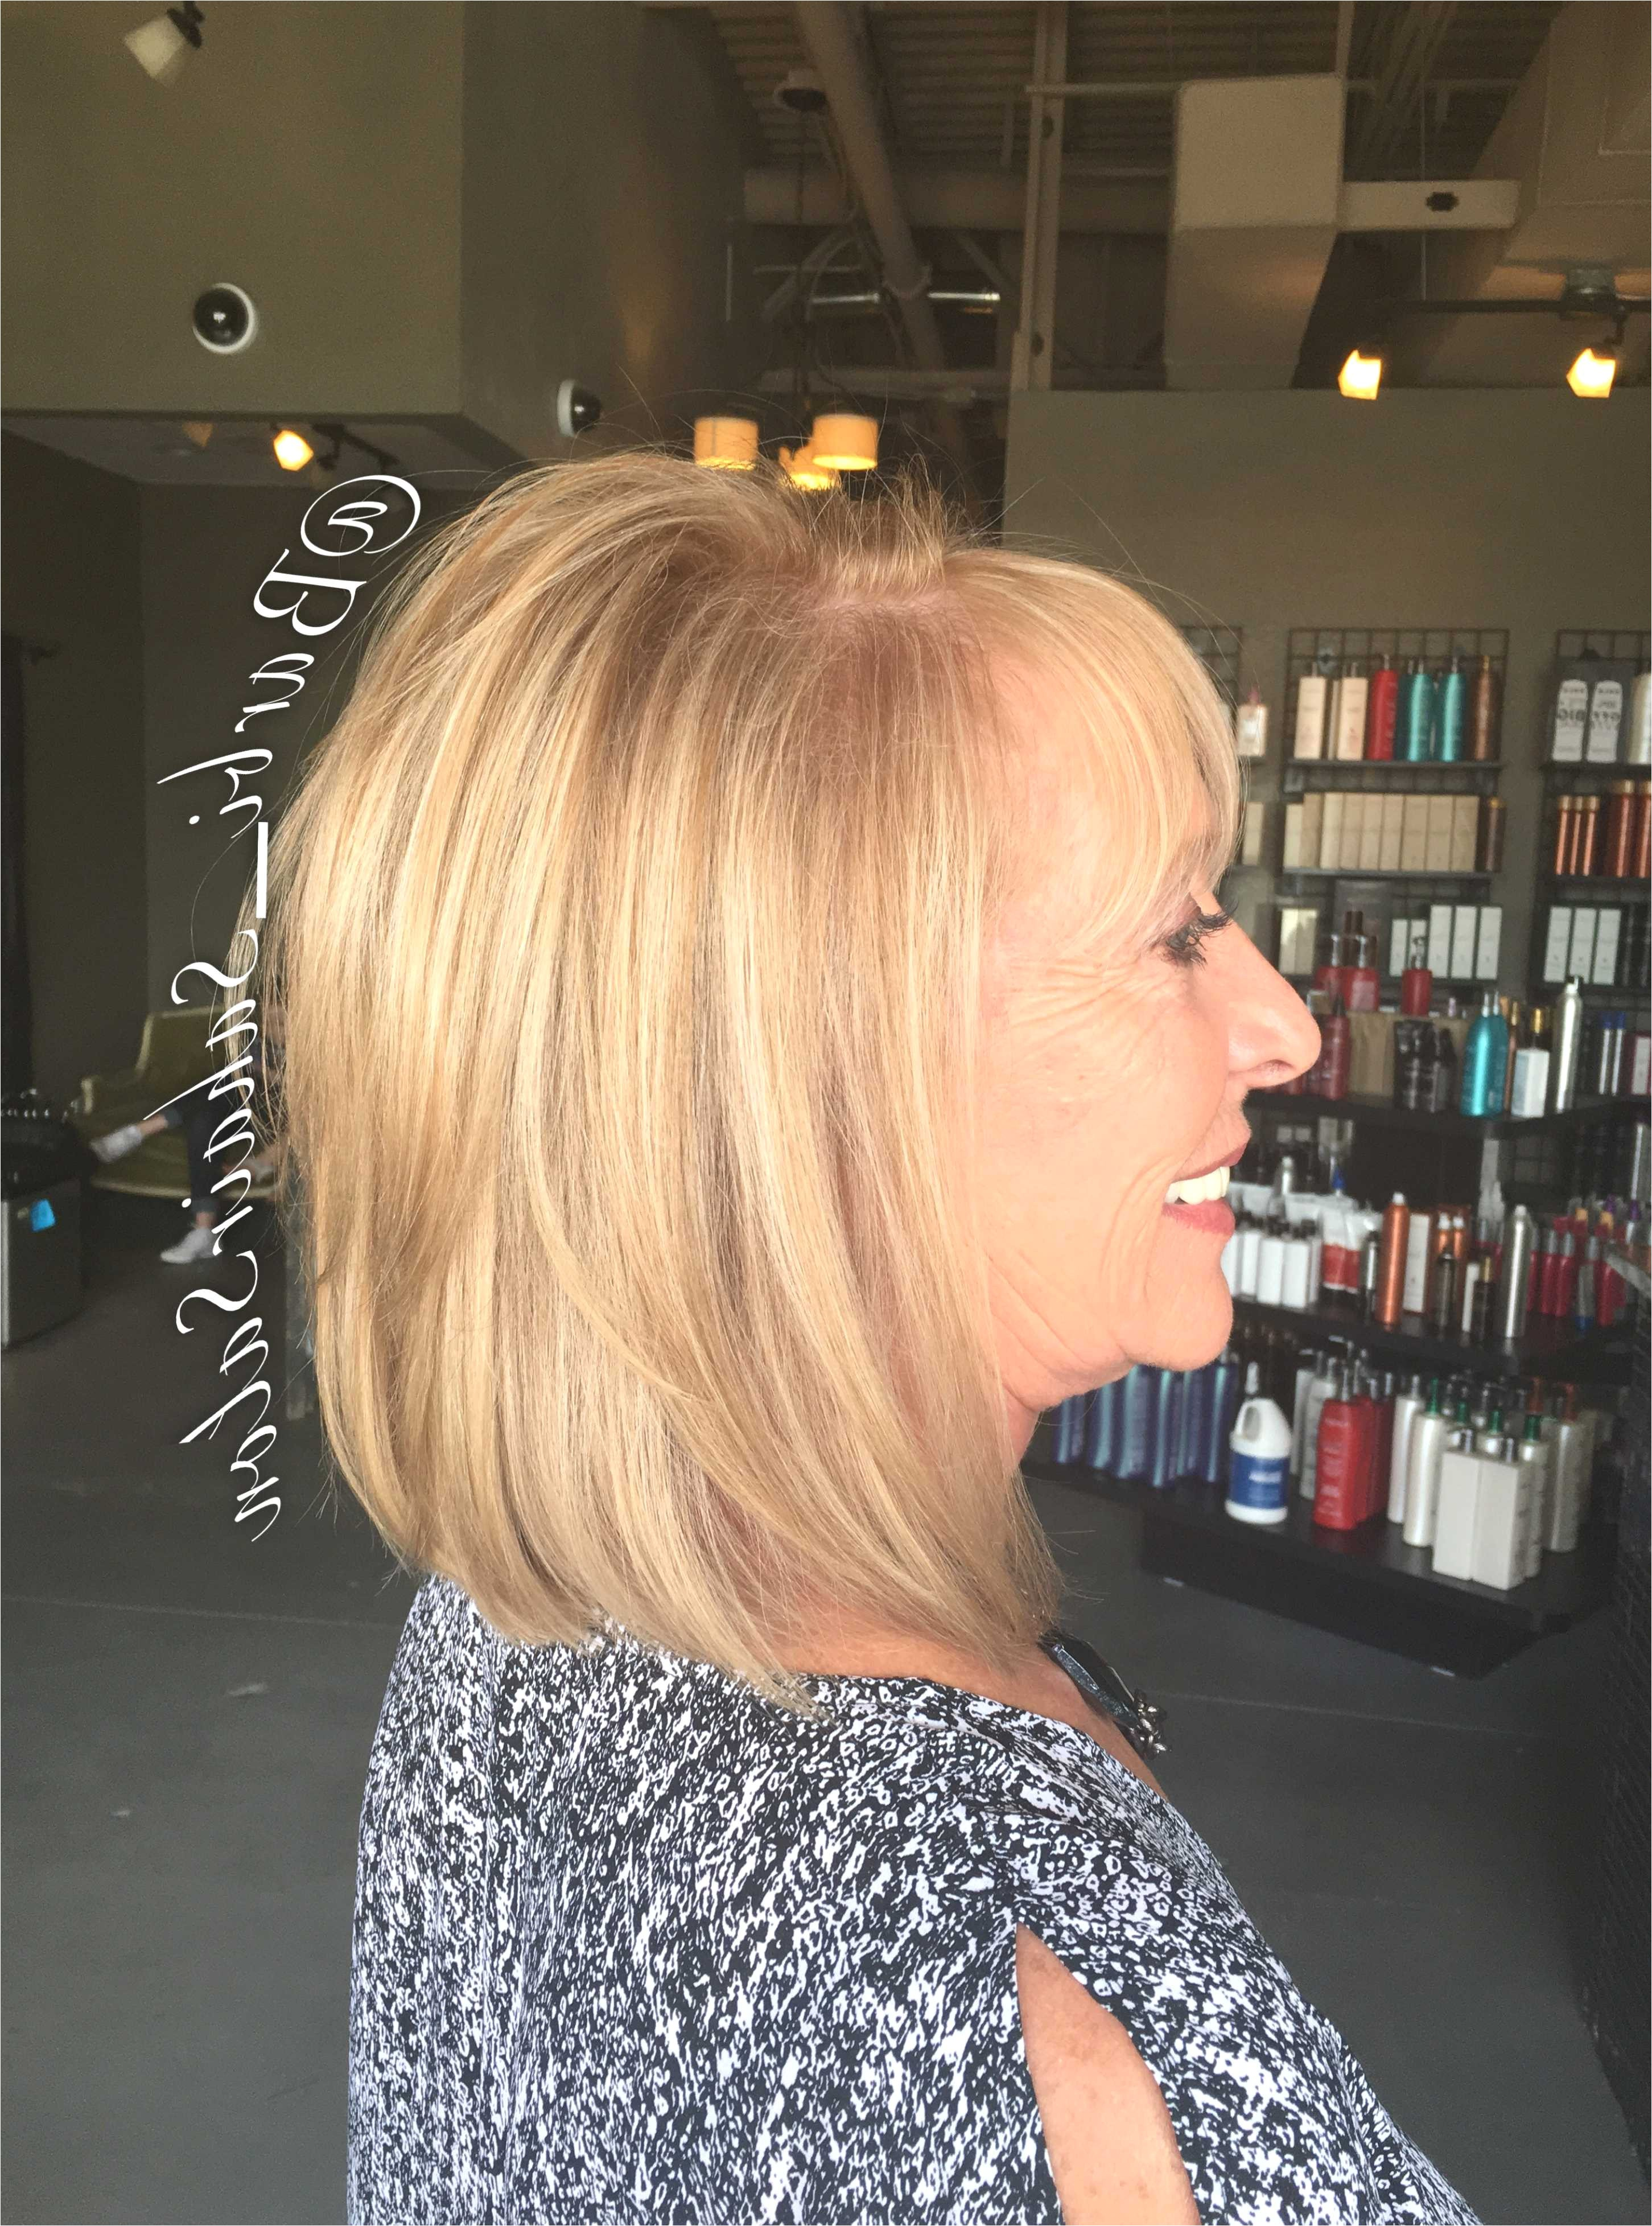 Short Hairstyles for 20 somethings Lovely Long Bob Haircuts with Bangs New I Pinimg 1200x 0d 60 8a Under Perm